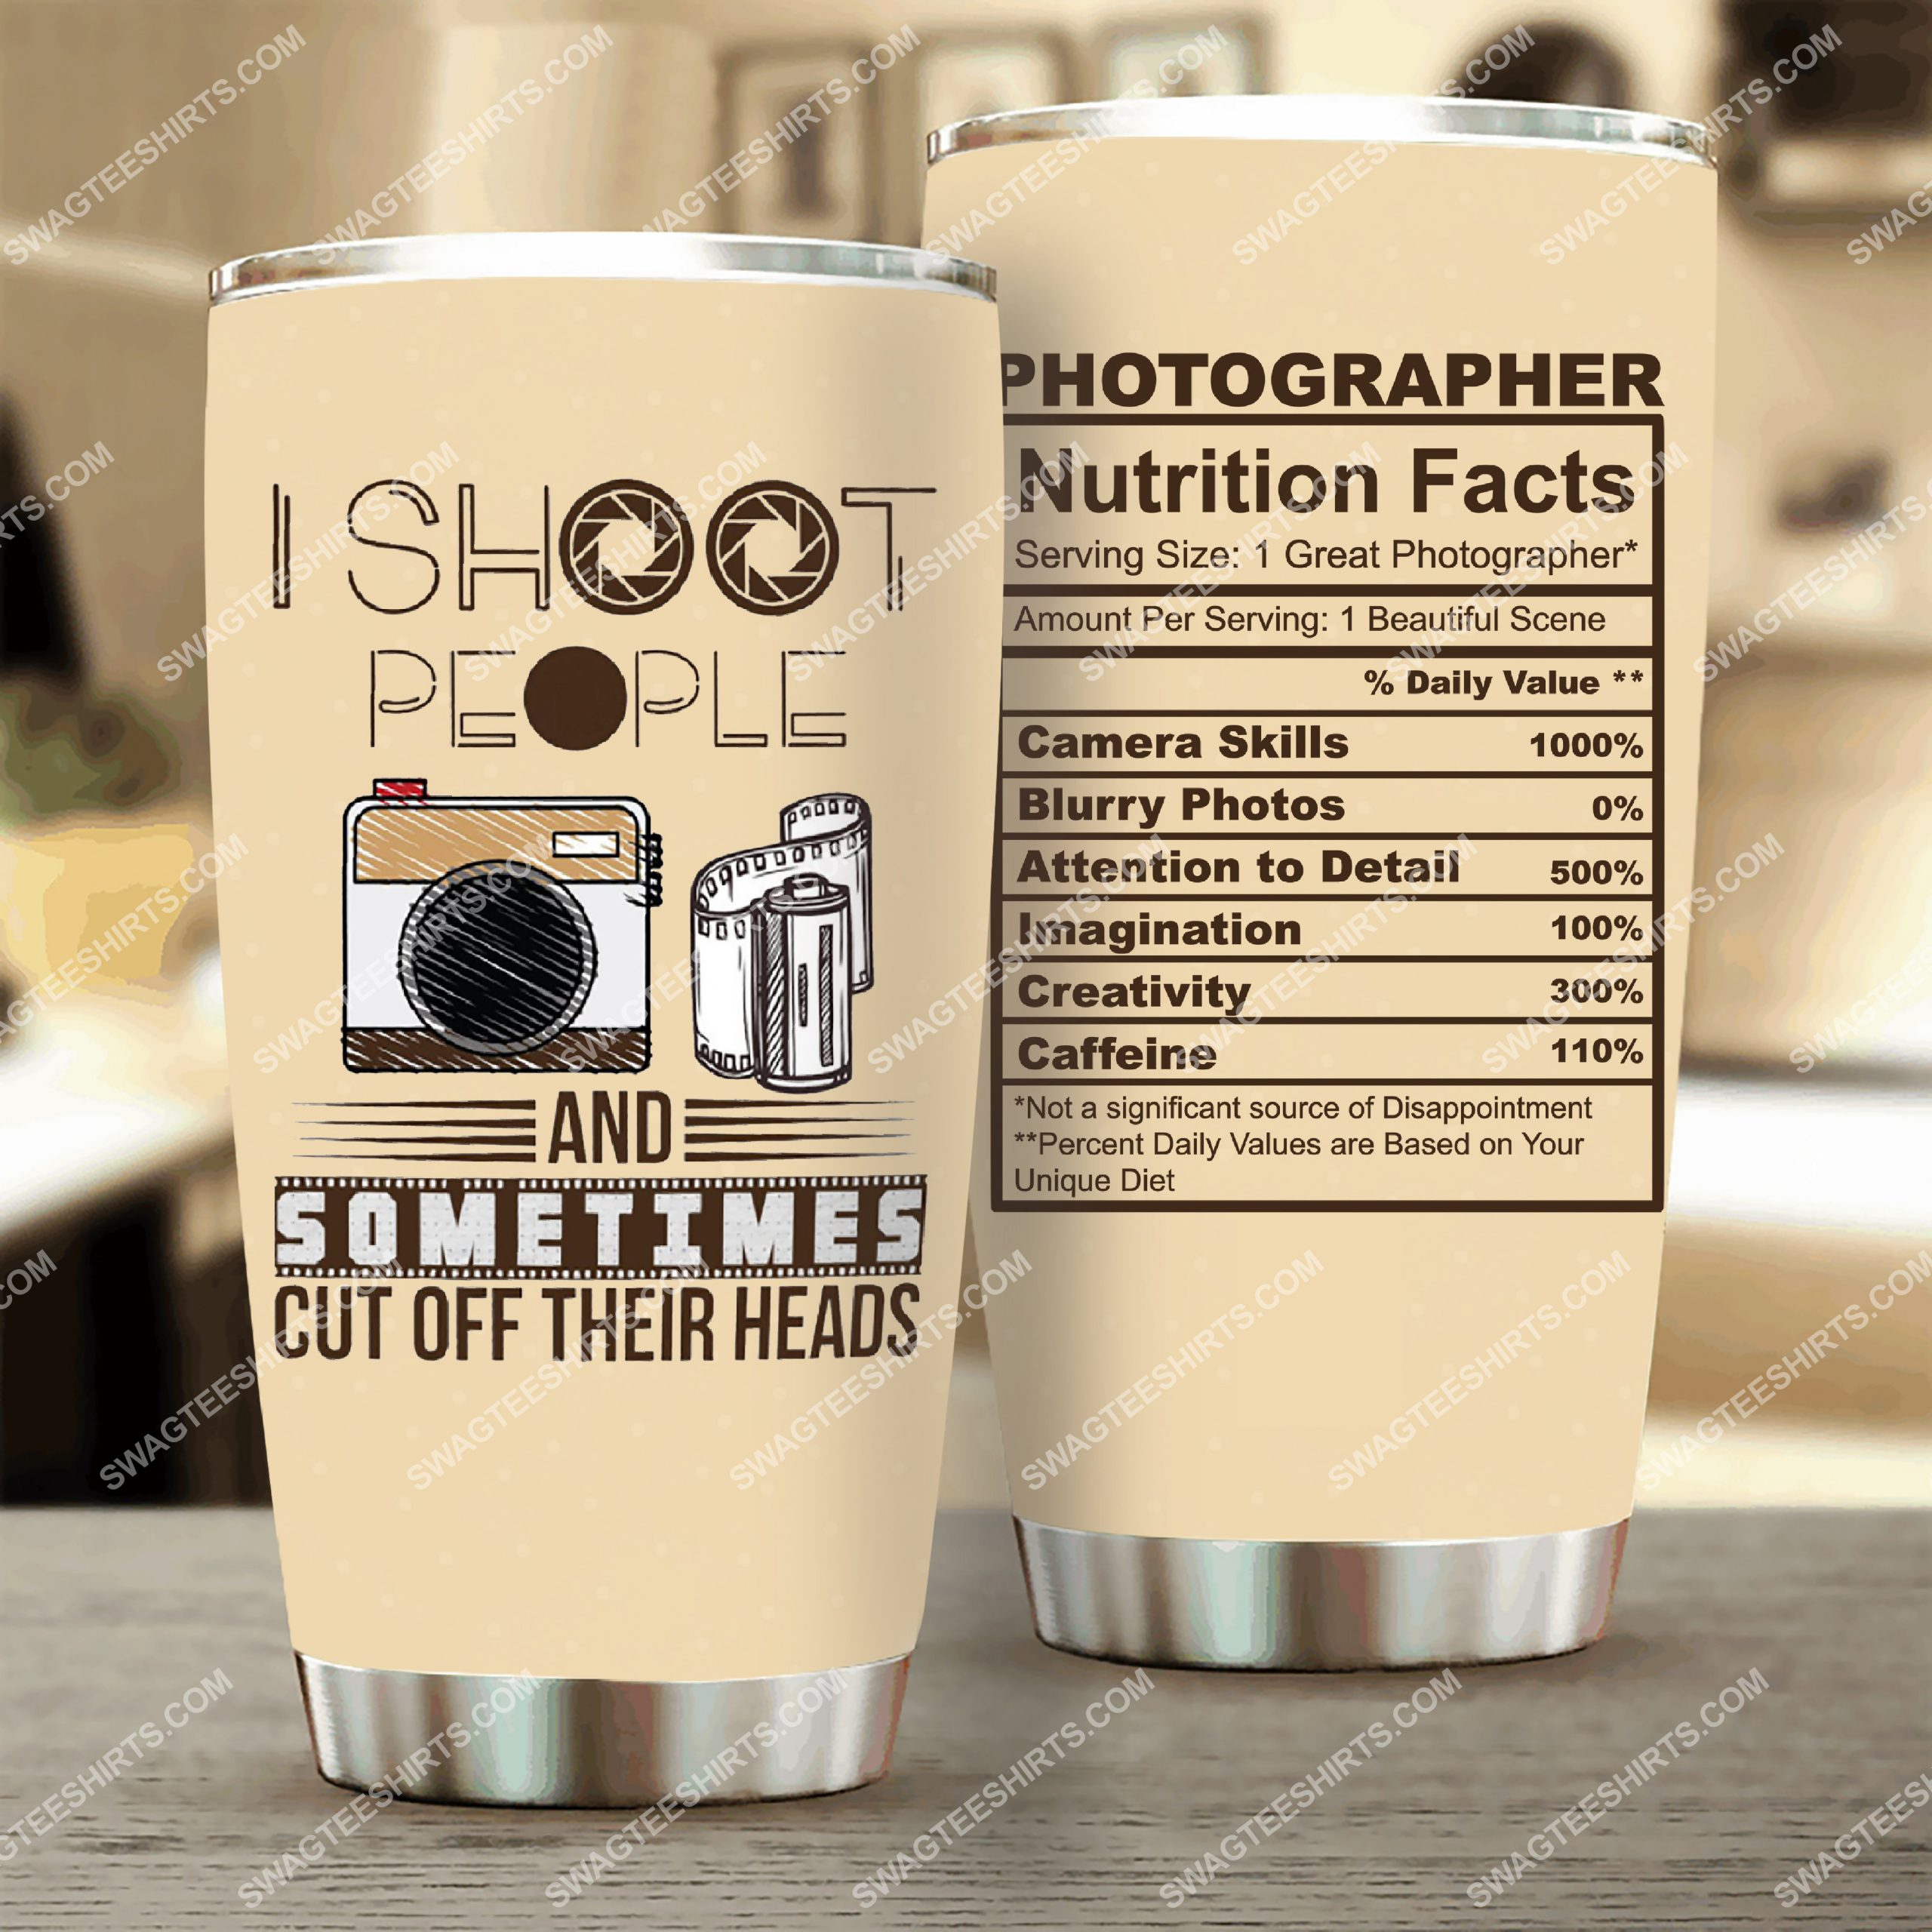 photographer i shoot people all over printed stainless steel tumbler 2(1)